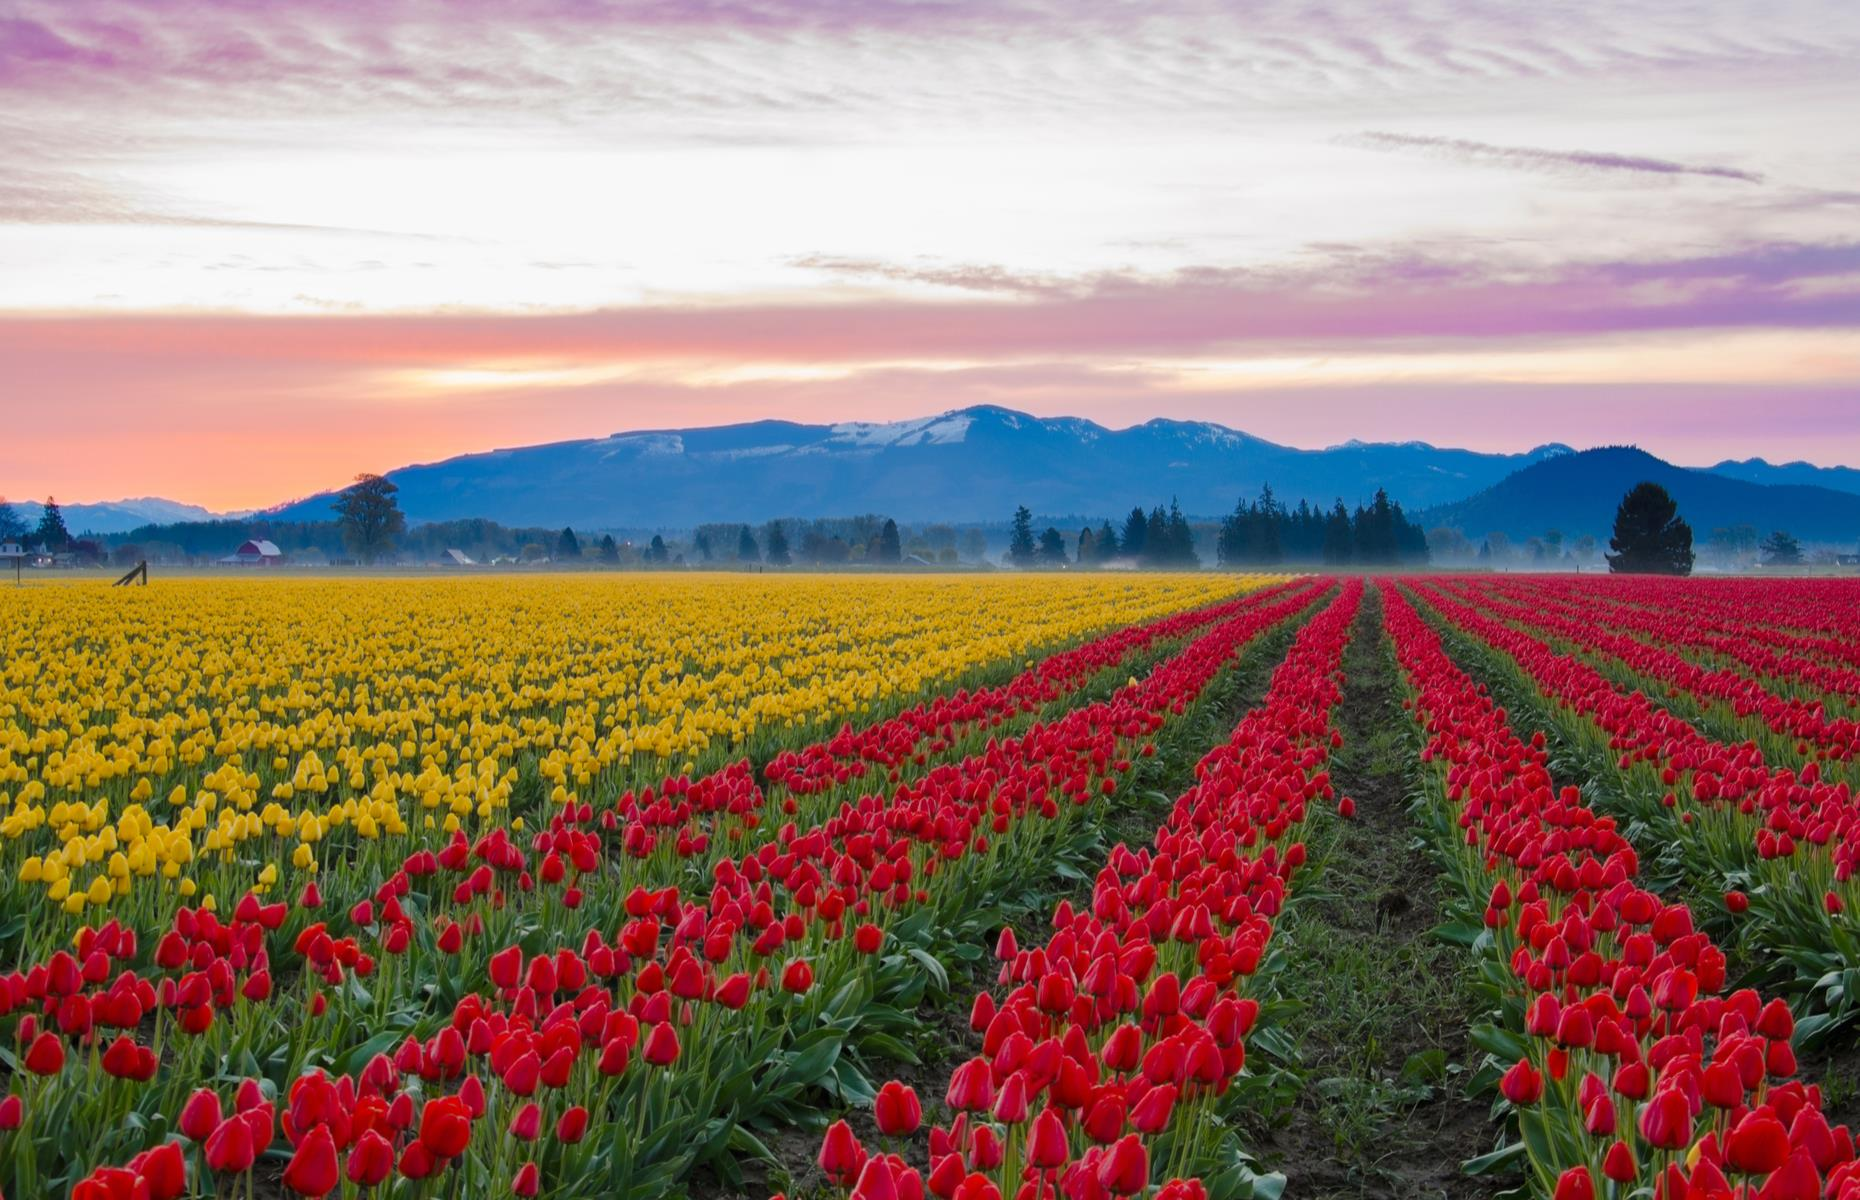 Slide 55 of 61: The neat rows of tulips lining the fields of Skagit Valley are a near mirror image of those in the Netherlands. The area's annual flower festival usually begins each April, and sees this northwestern pocket of Washington bright with hundreds of bold tulips in sunset colors. Photo contests, bike tours and barbecues add to the fun that is due to resume in 2021.